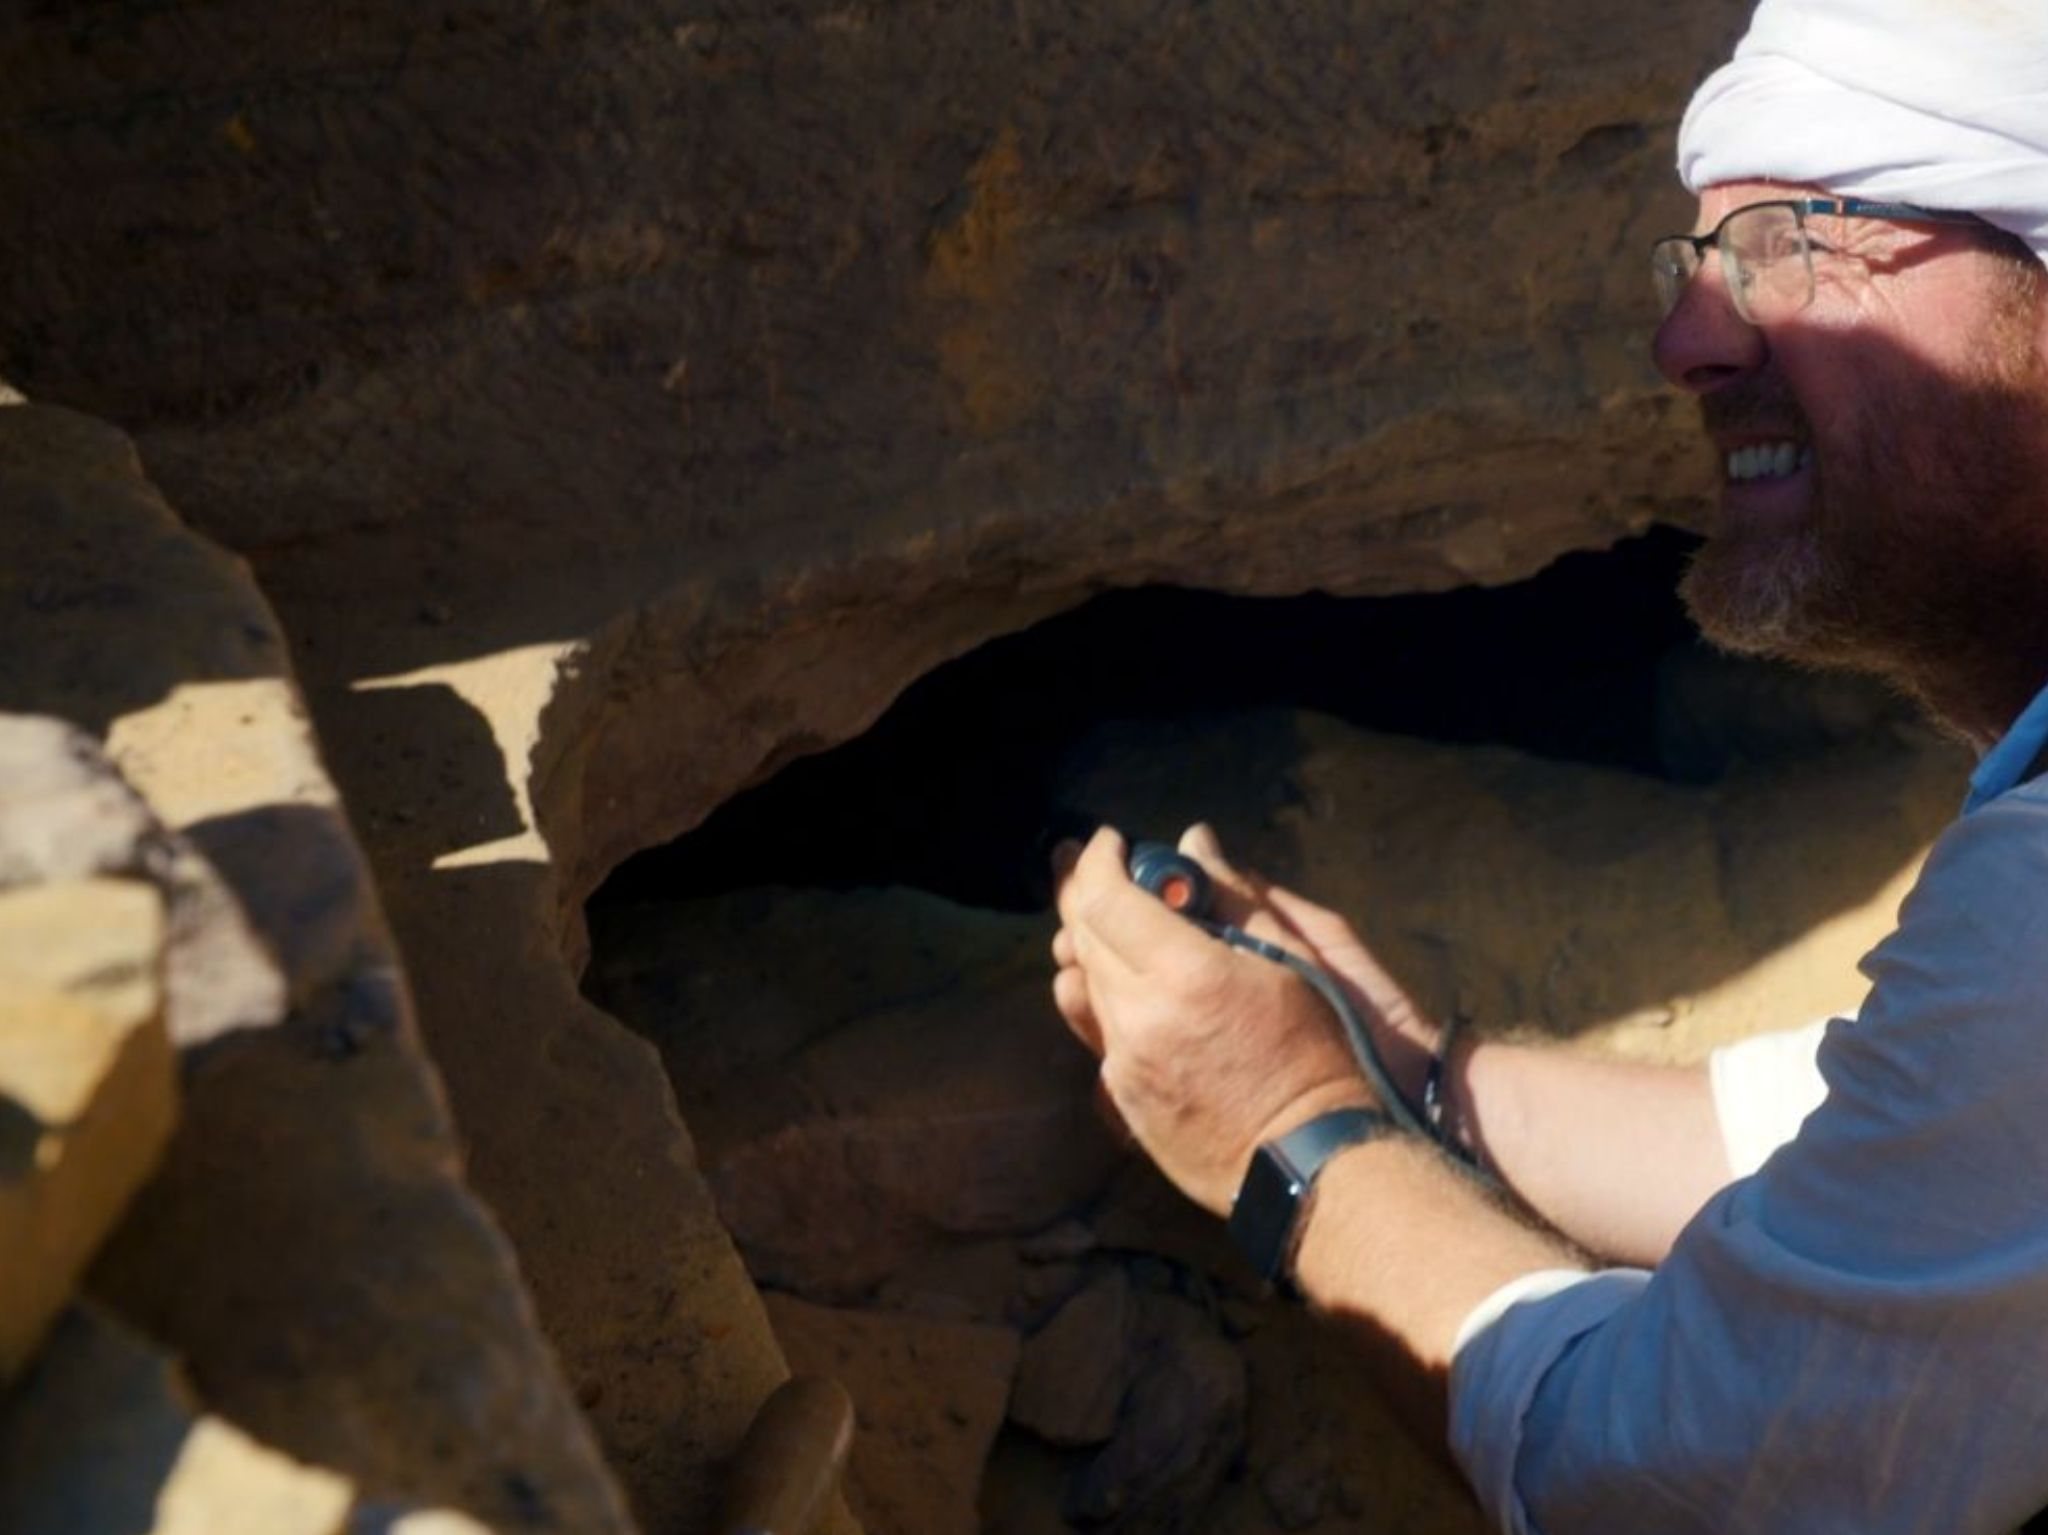 Egypt - Archaeologist, Alejandro Jimenez-Serrano, discovers a new tomb. This is from Lost... [Photo of the day - August 2021]